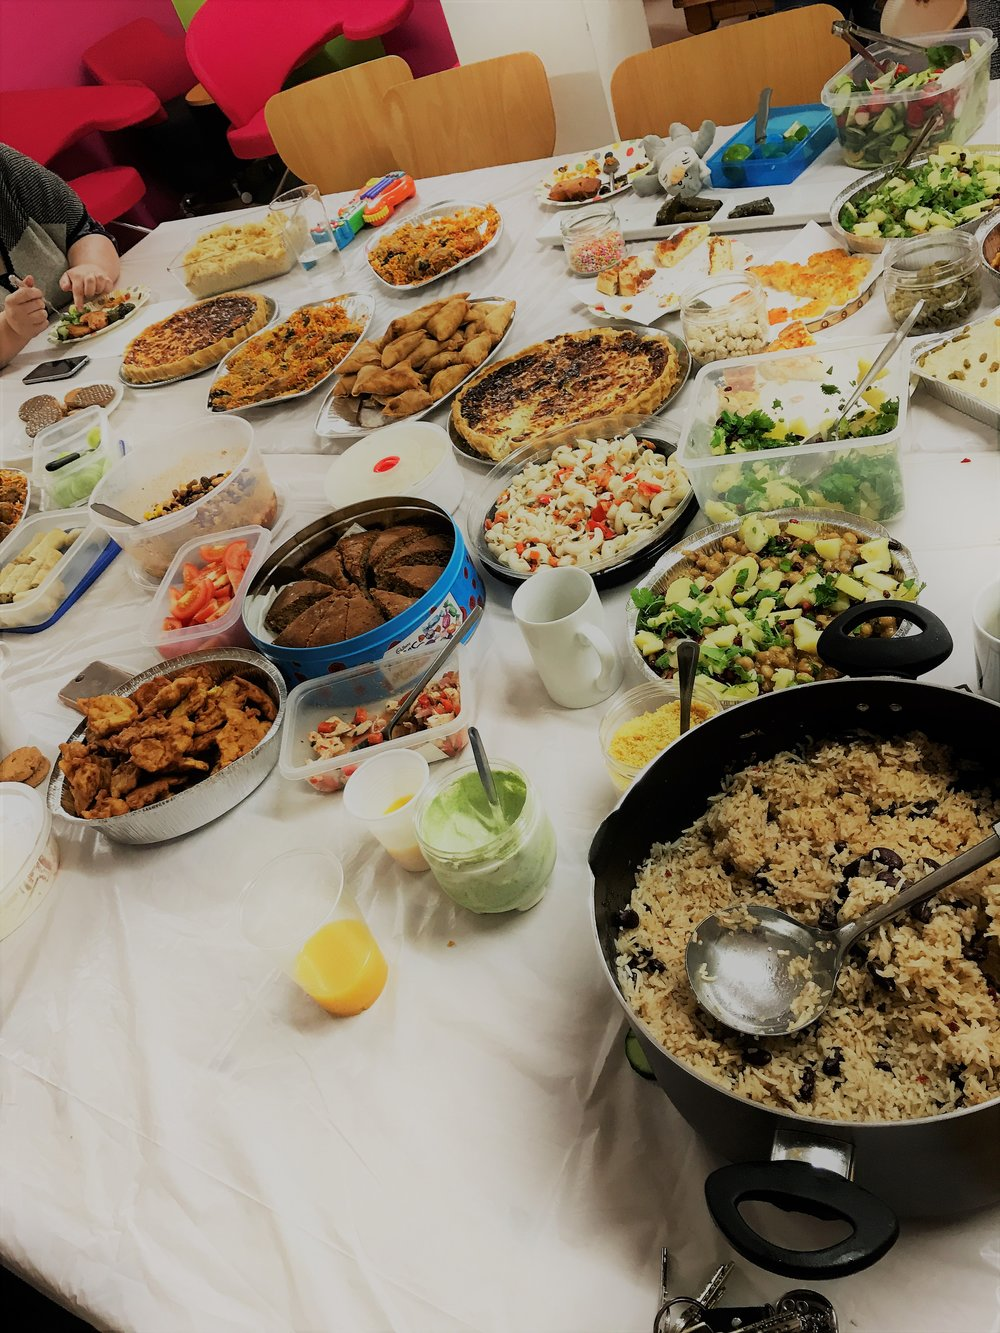 eid food on table.jpg